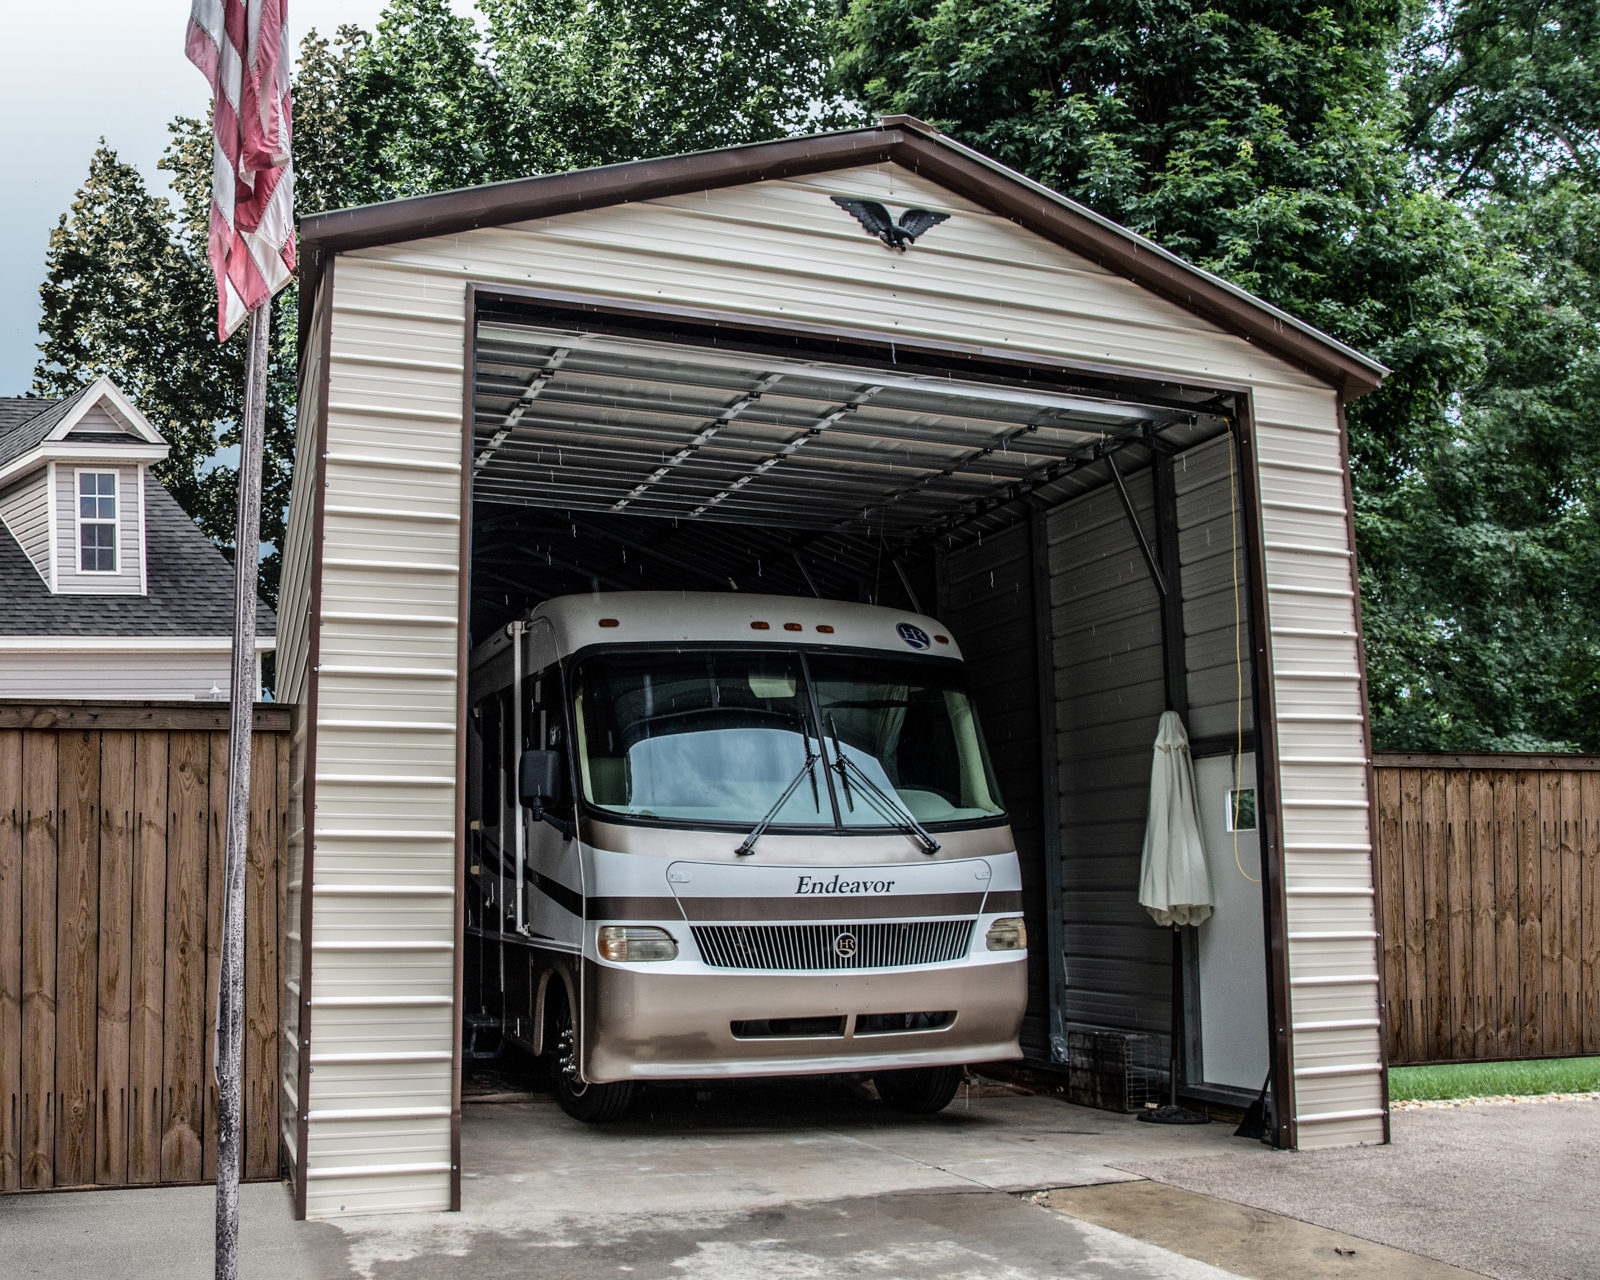 cape girardeau missouri rv carport